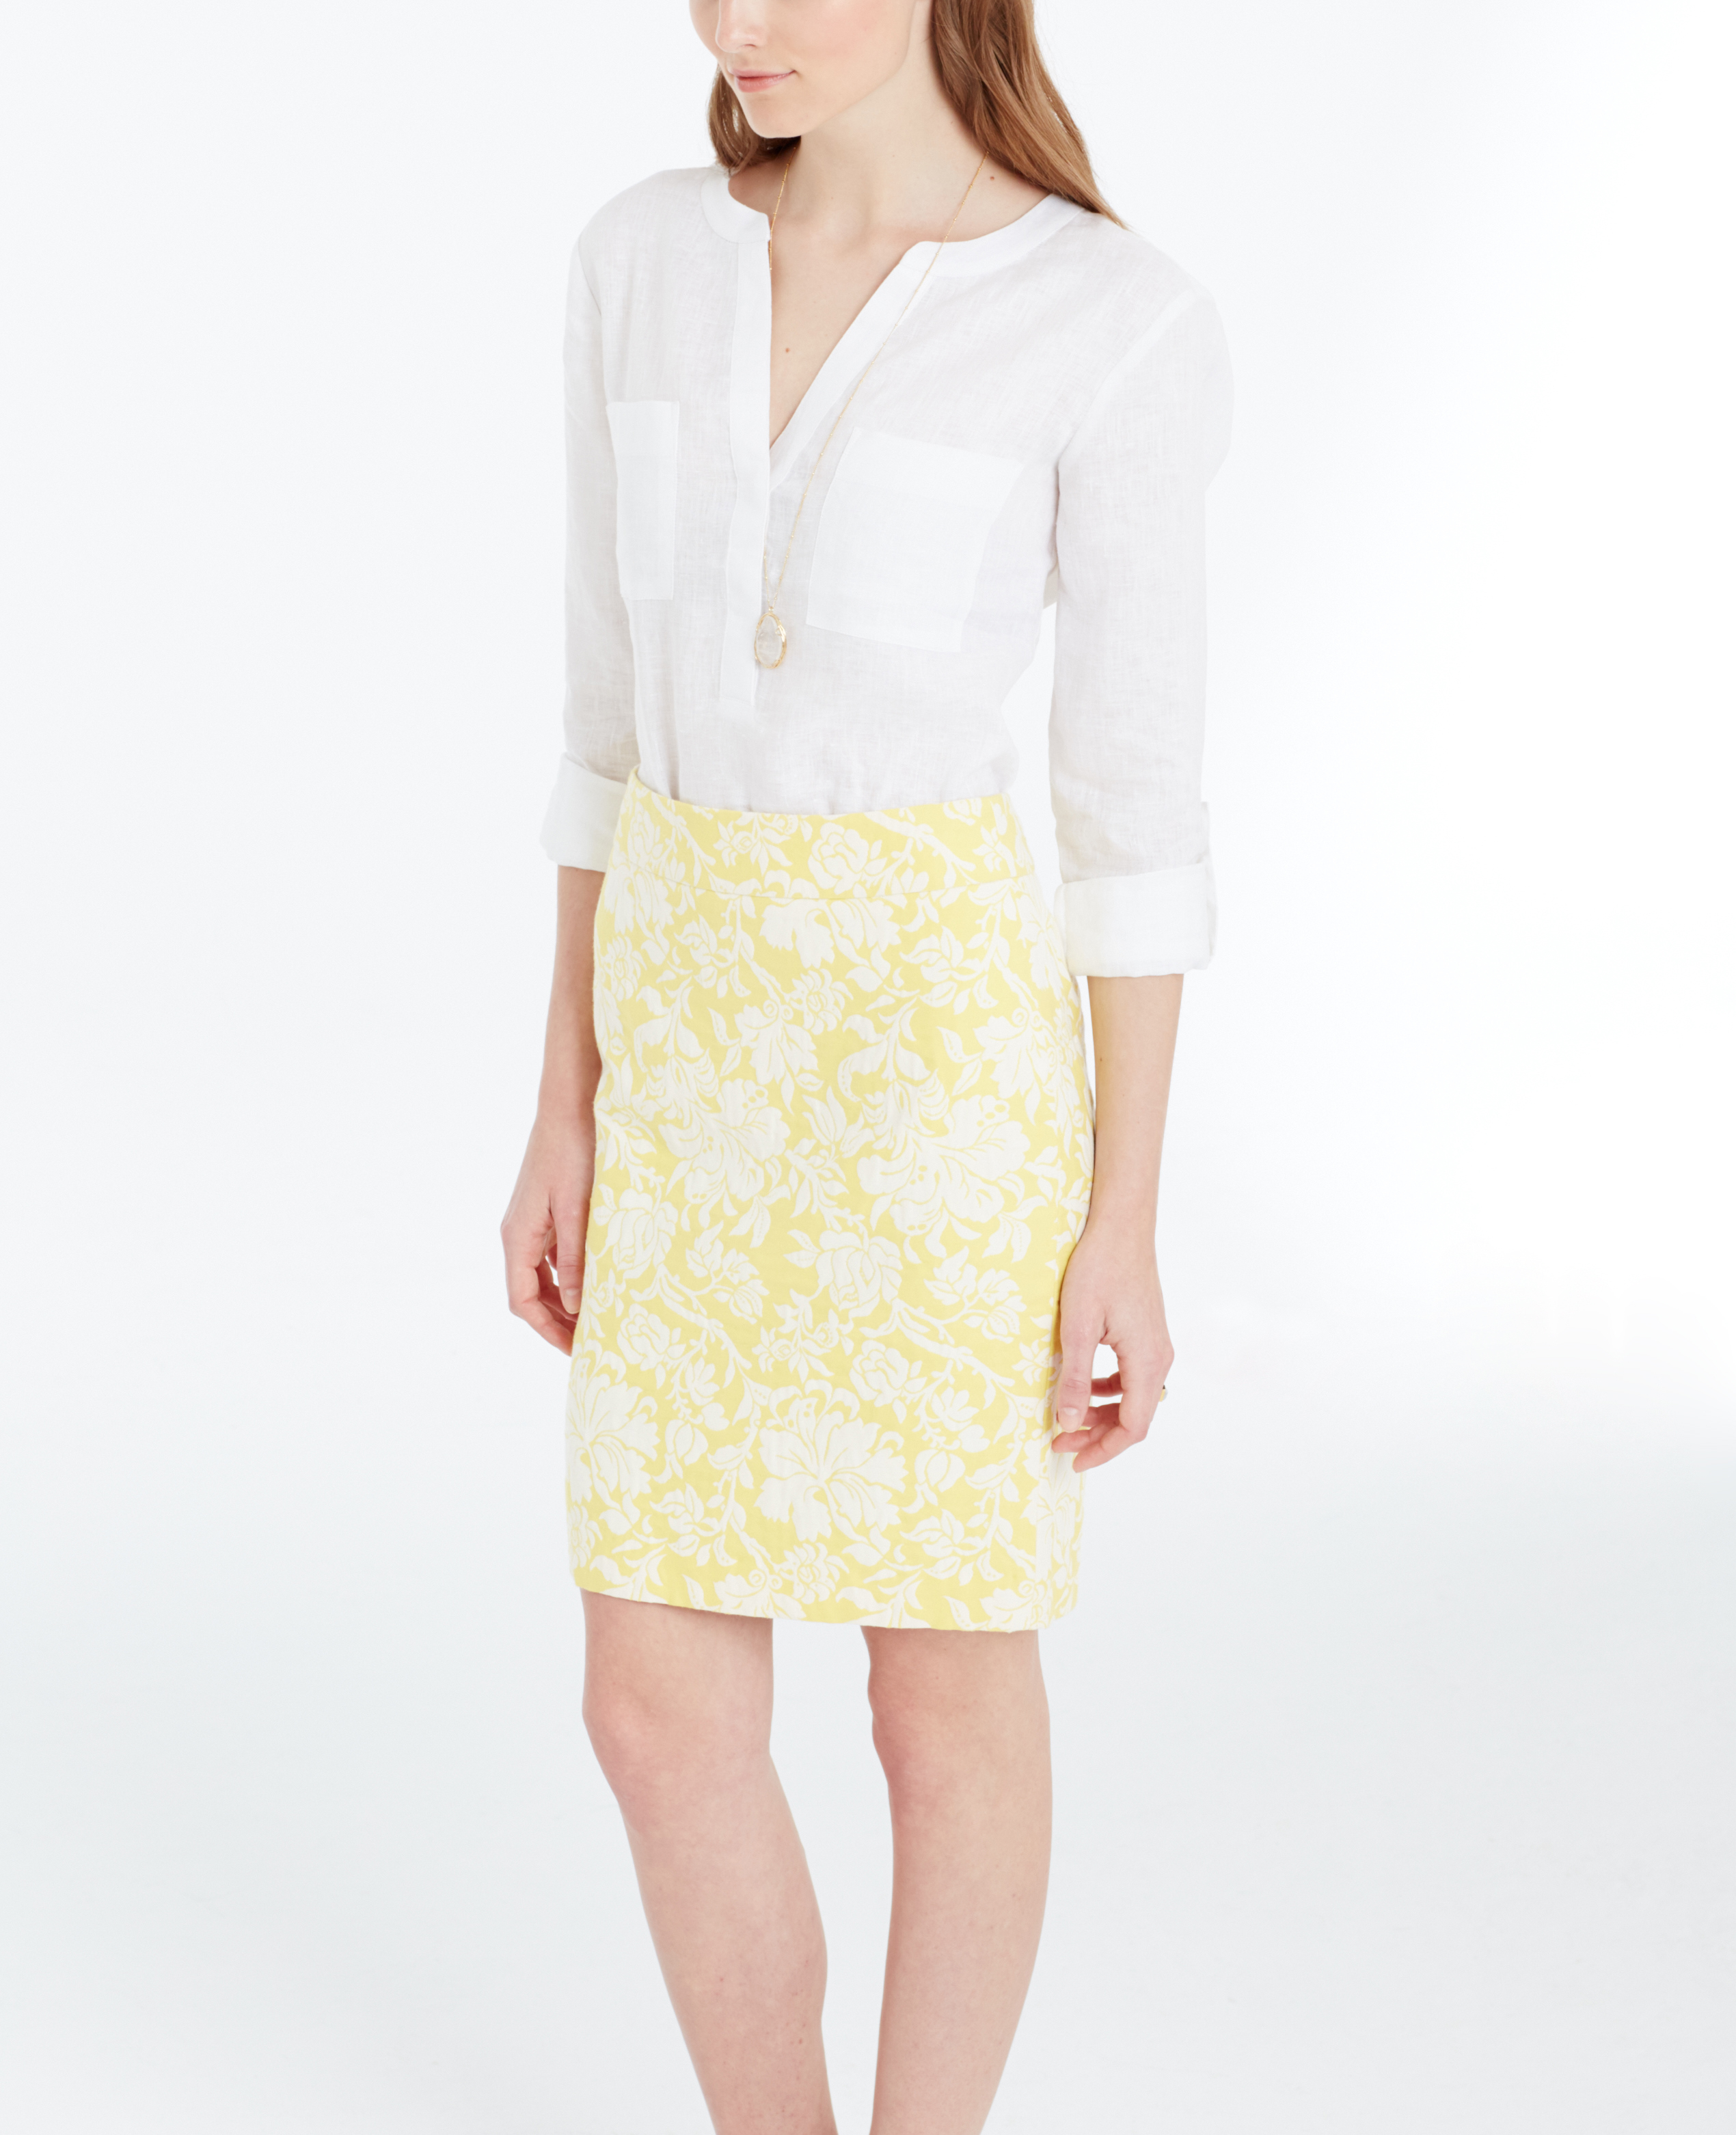 Ann taylor Tall Magnolia Floral Jacquard Pencil Skirt in Yellow | Lyst